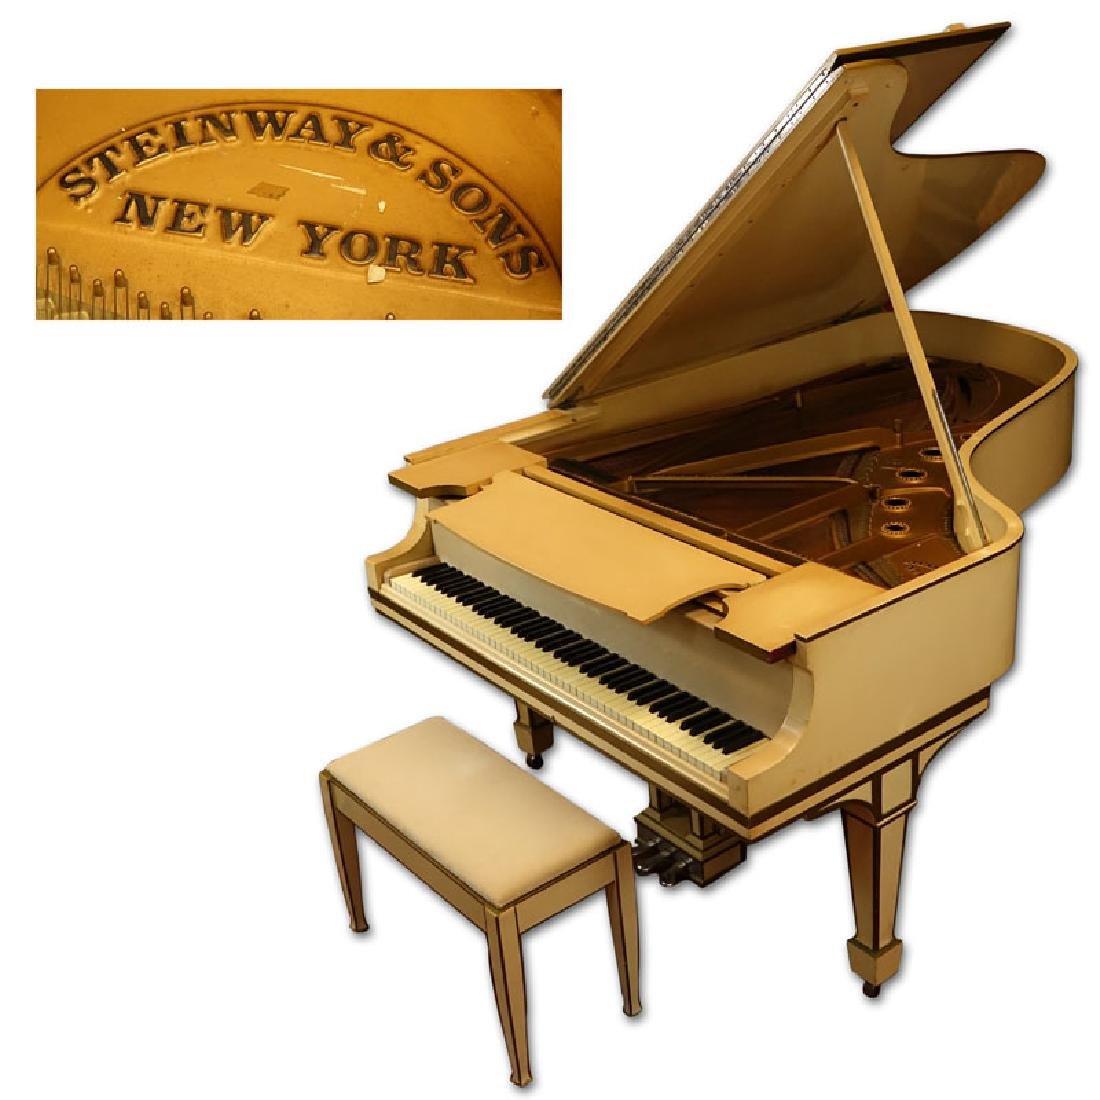 1911 Steinway & Sons Grand Piano Model B #145933 with